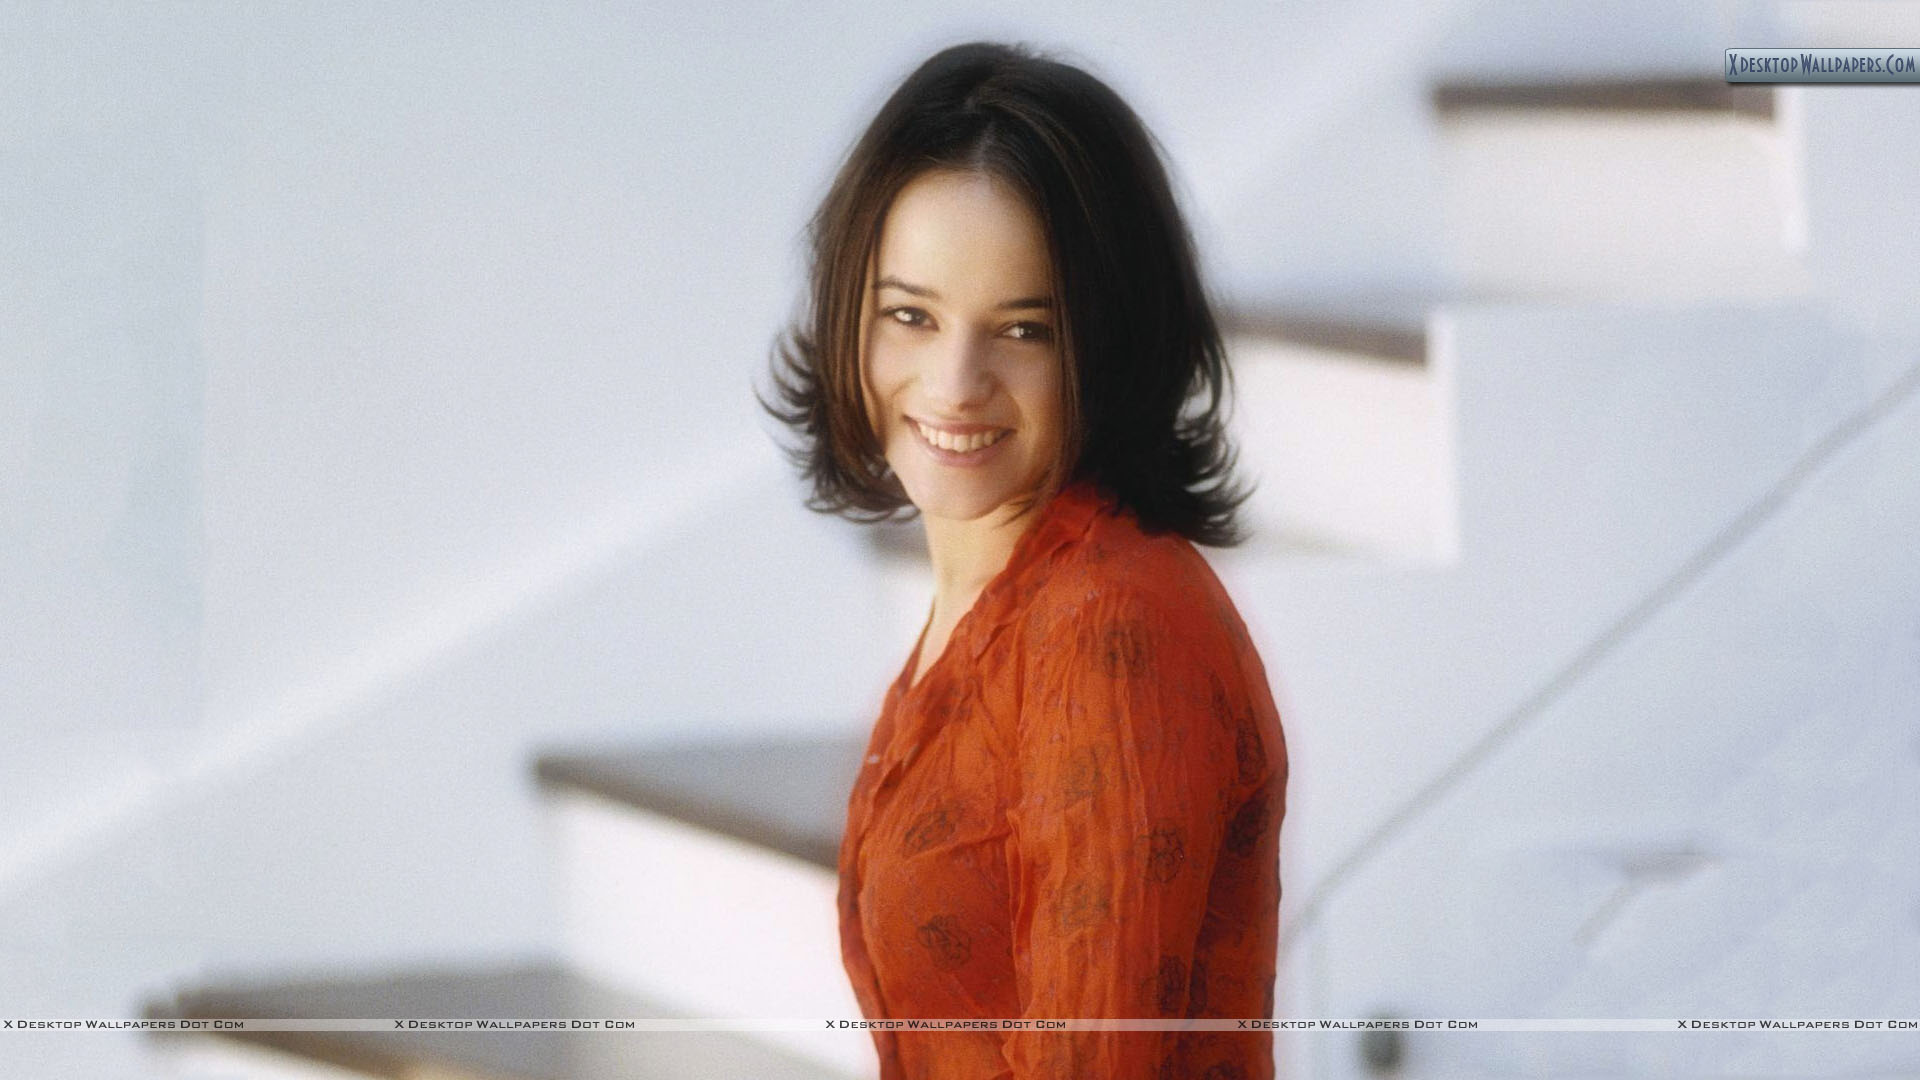 Alizee Wallpaper Hd Alizee Jacotey Smile In Orange Color Dress Wallpaper